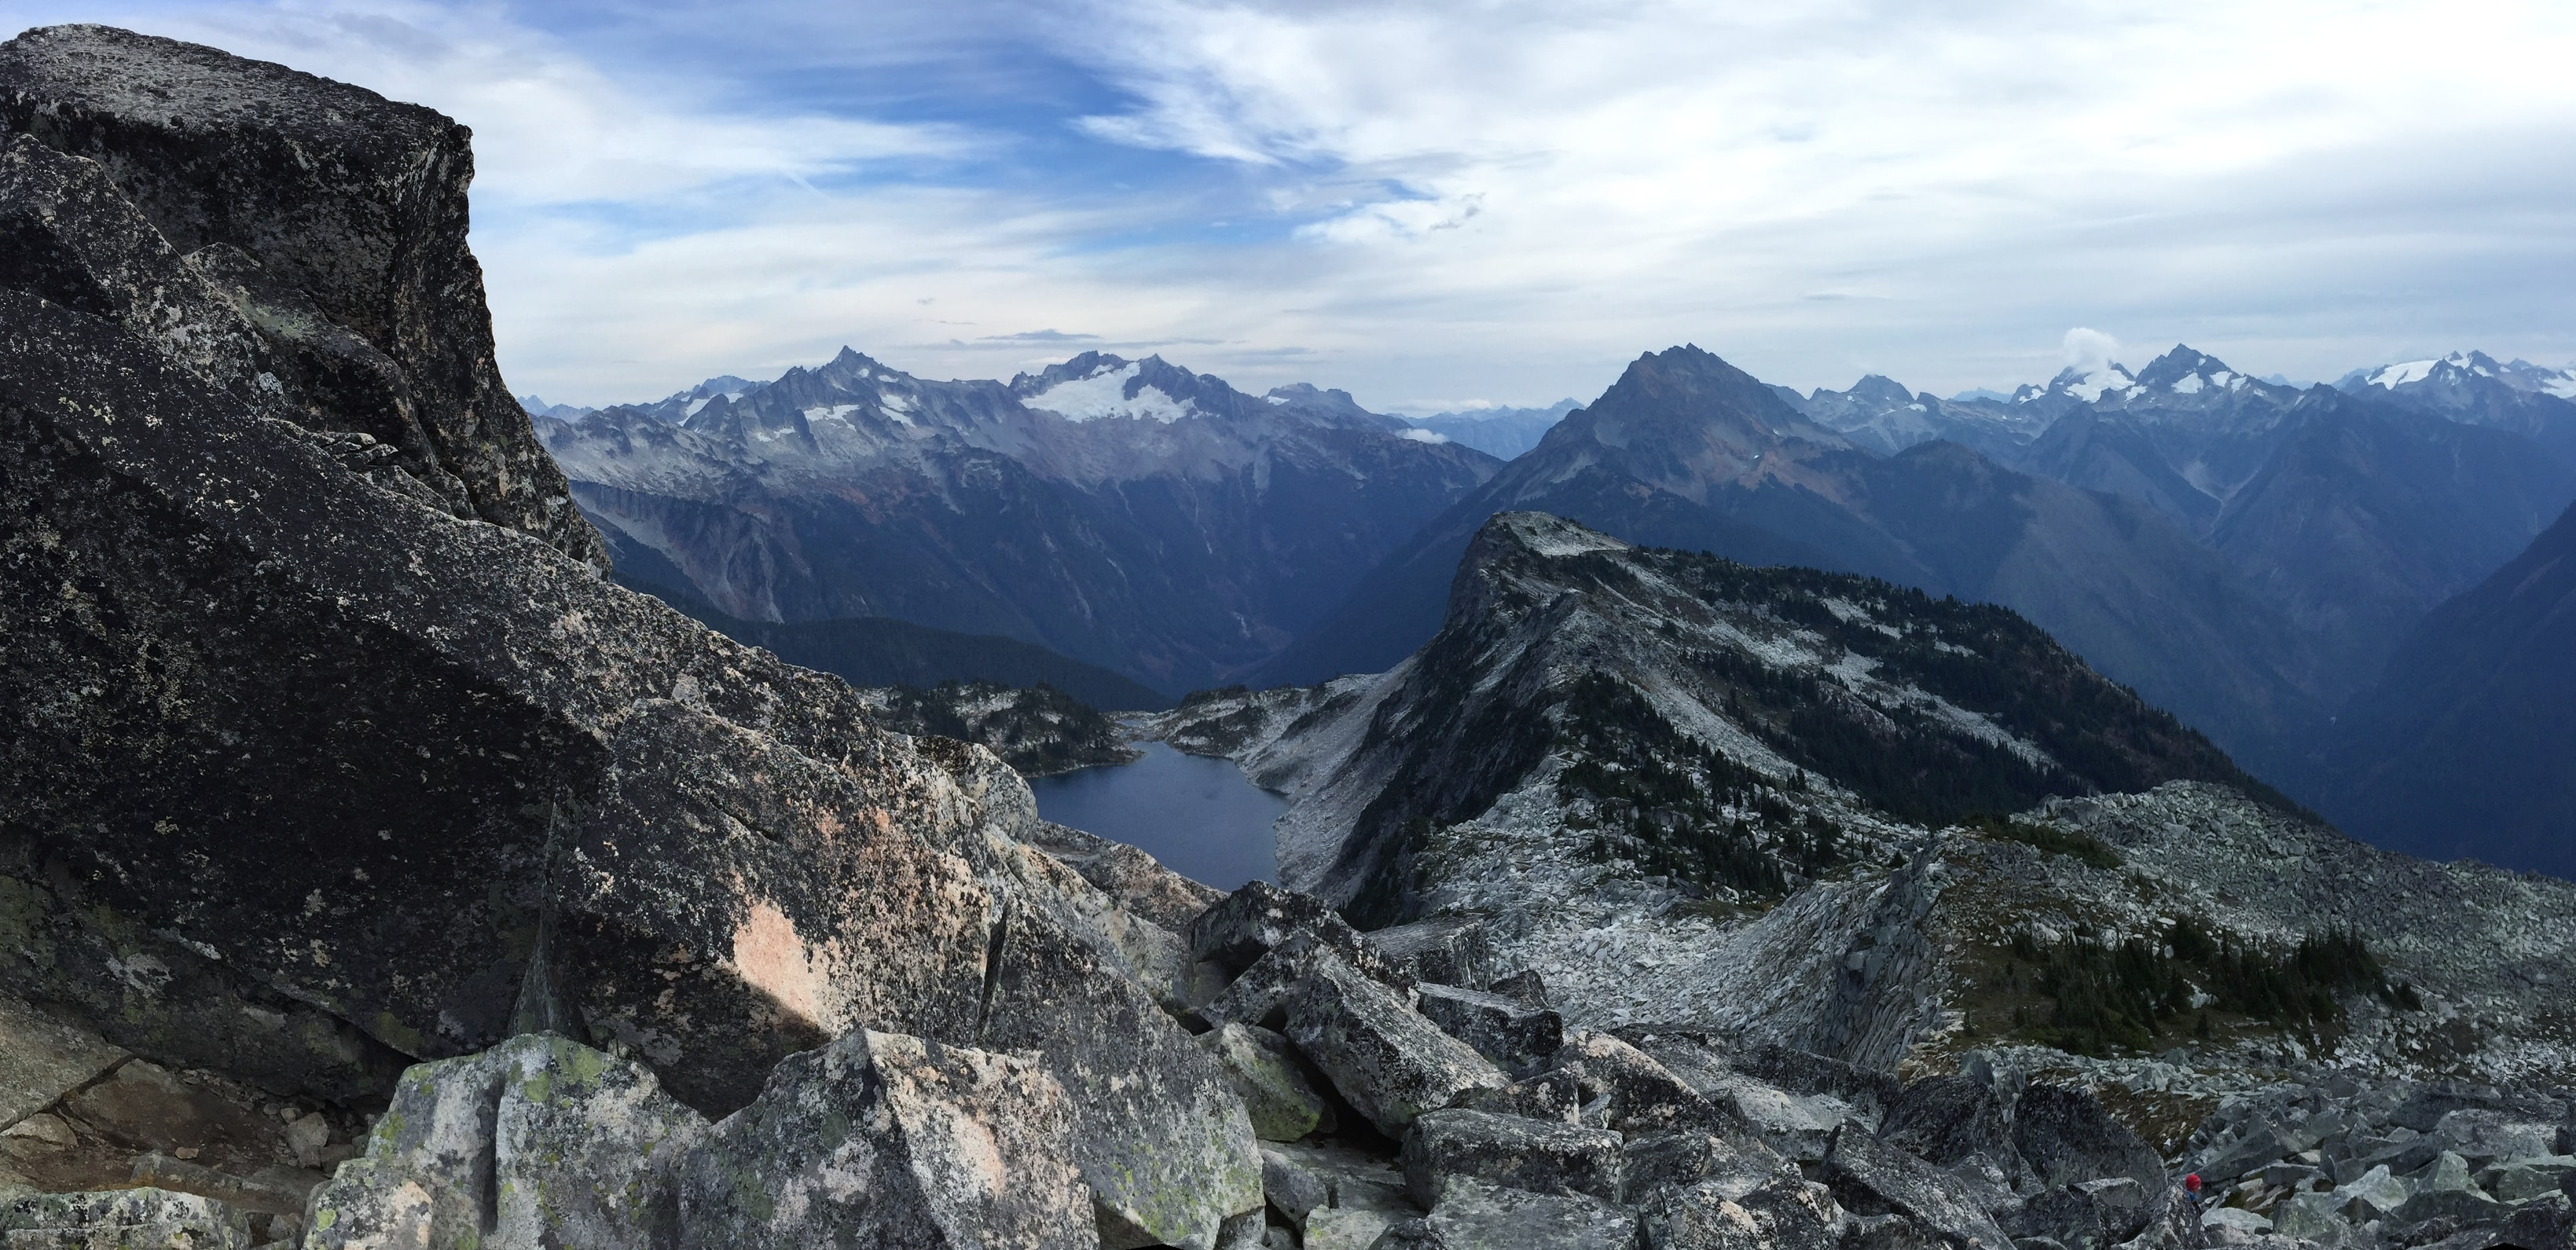 Mountain peaks and rock formations in Hidden Lake Peak